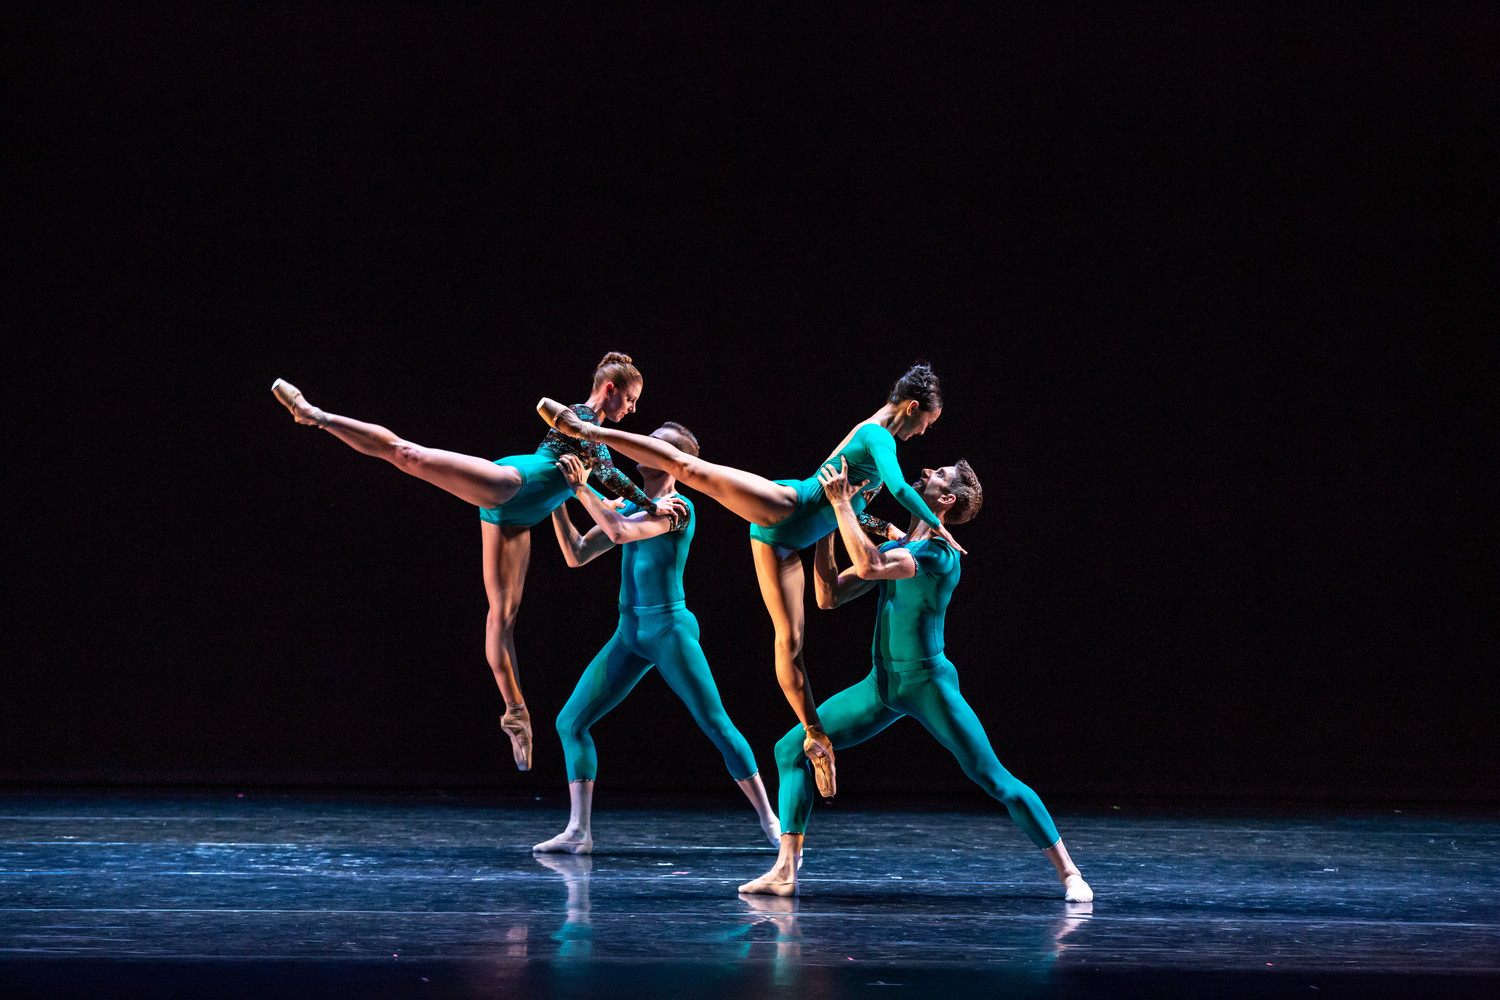 BWW Review: BARAK BALLET ~ BEAUTIFUL, BRAVE, BOLD AND BOUNTIFUL at THE BROAD STAGE